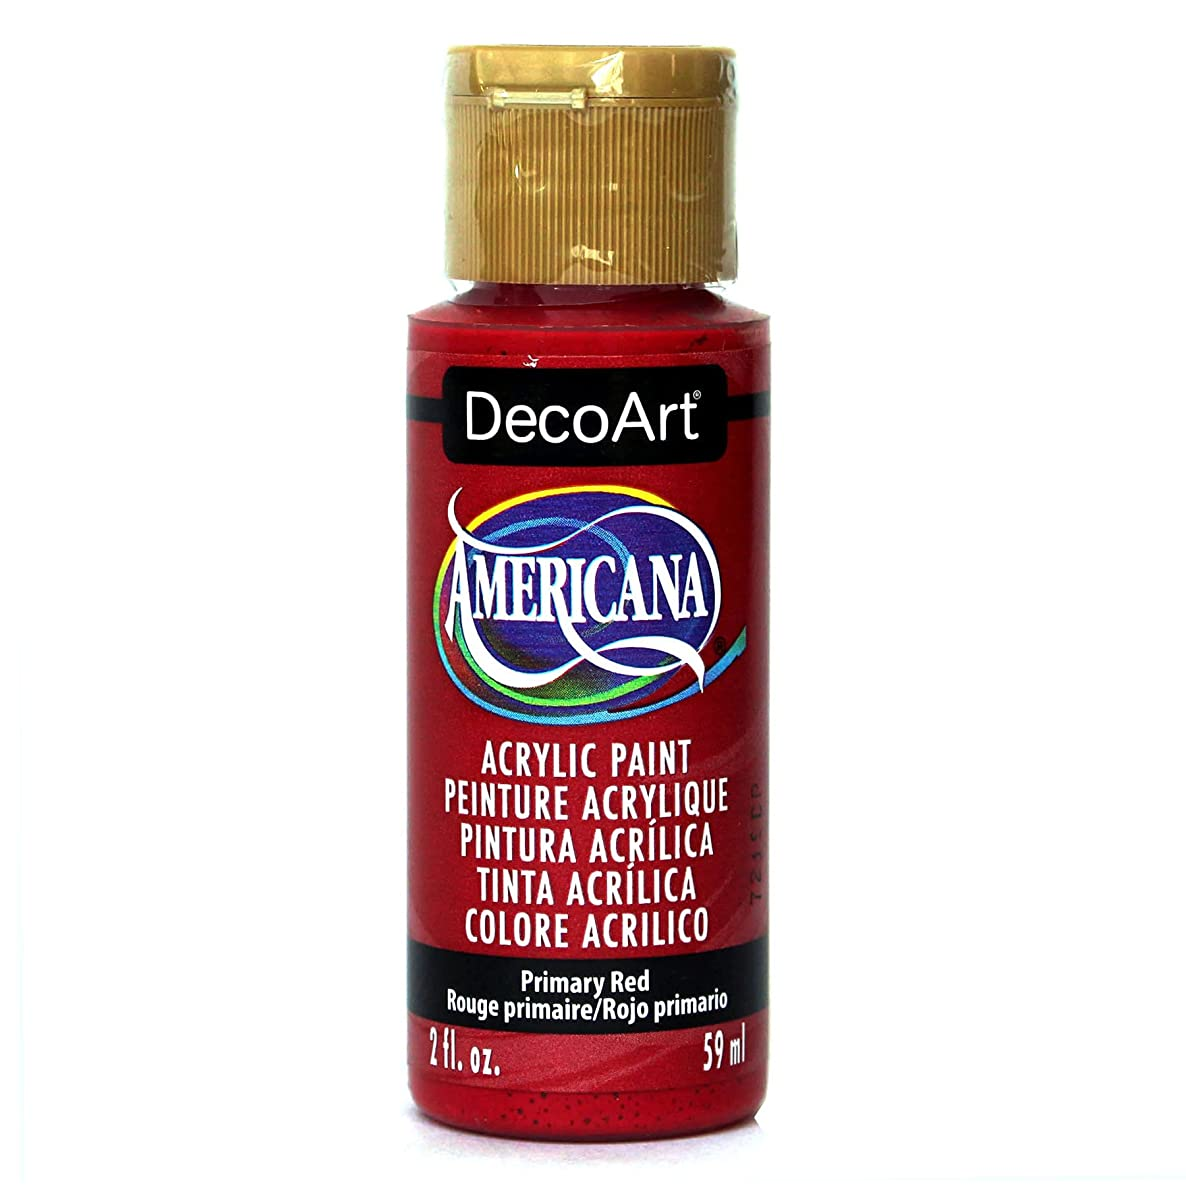 DecoArt Americana Acrylic Paint, 2-Ounce, Primary Red